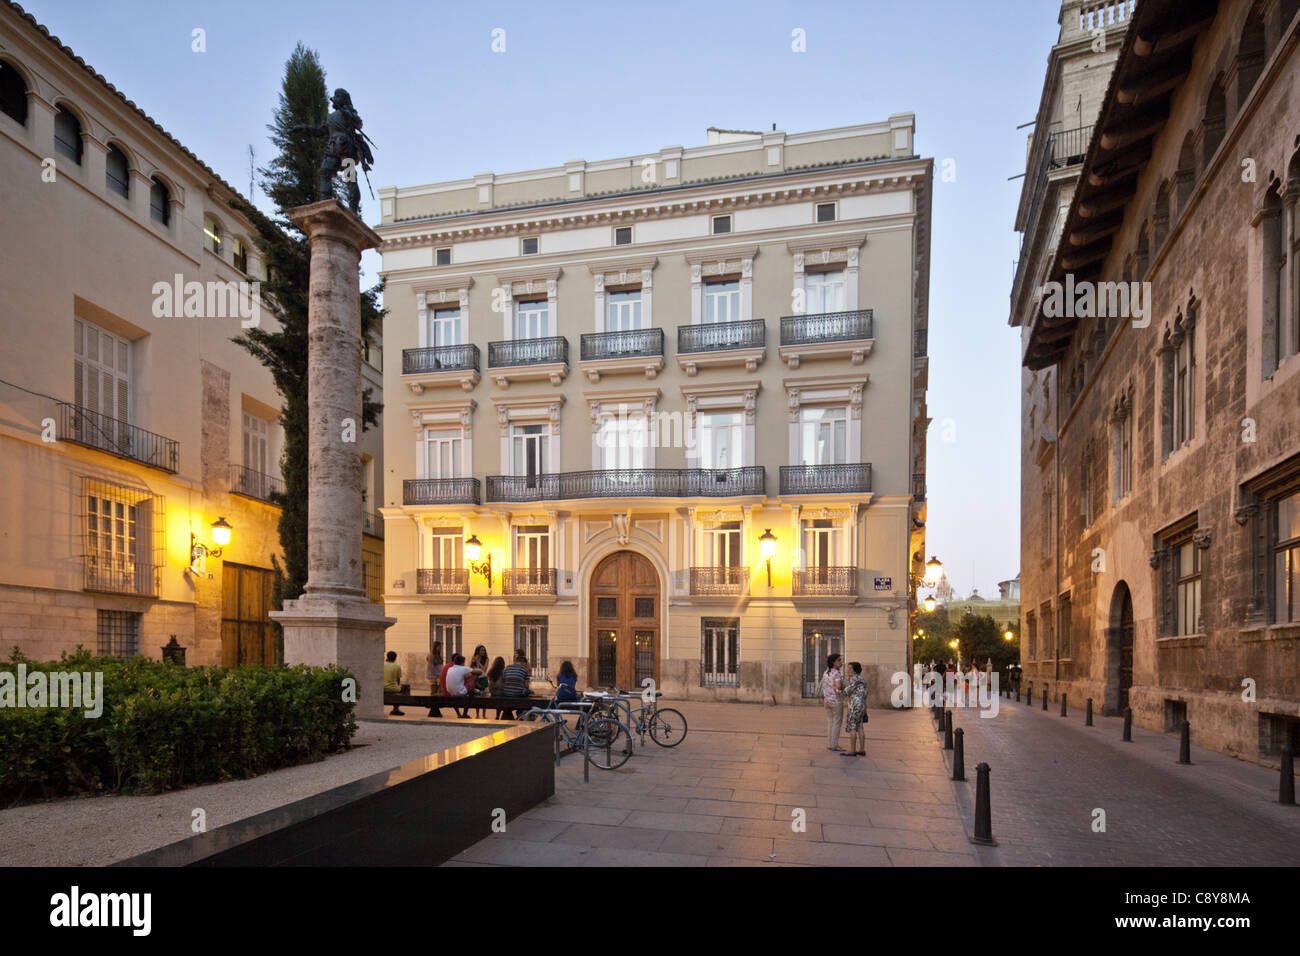 Seat of Government at Plaza de Manises in old city center of Valencia, Spain Stock Photo